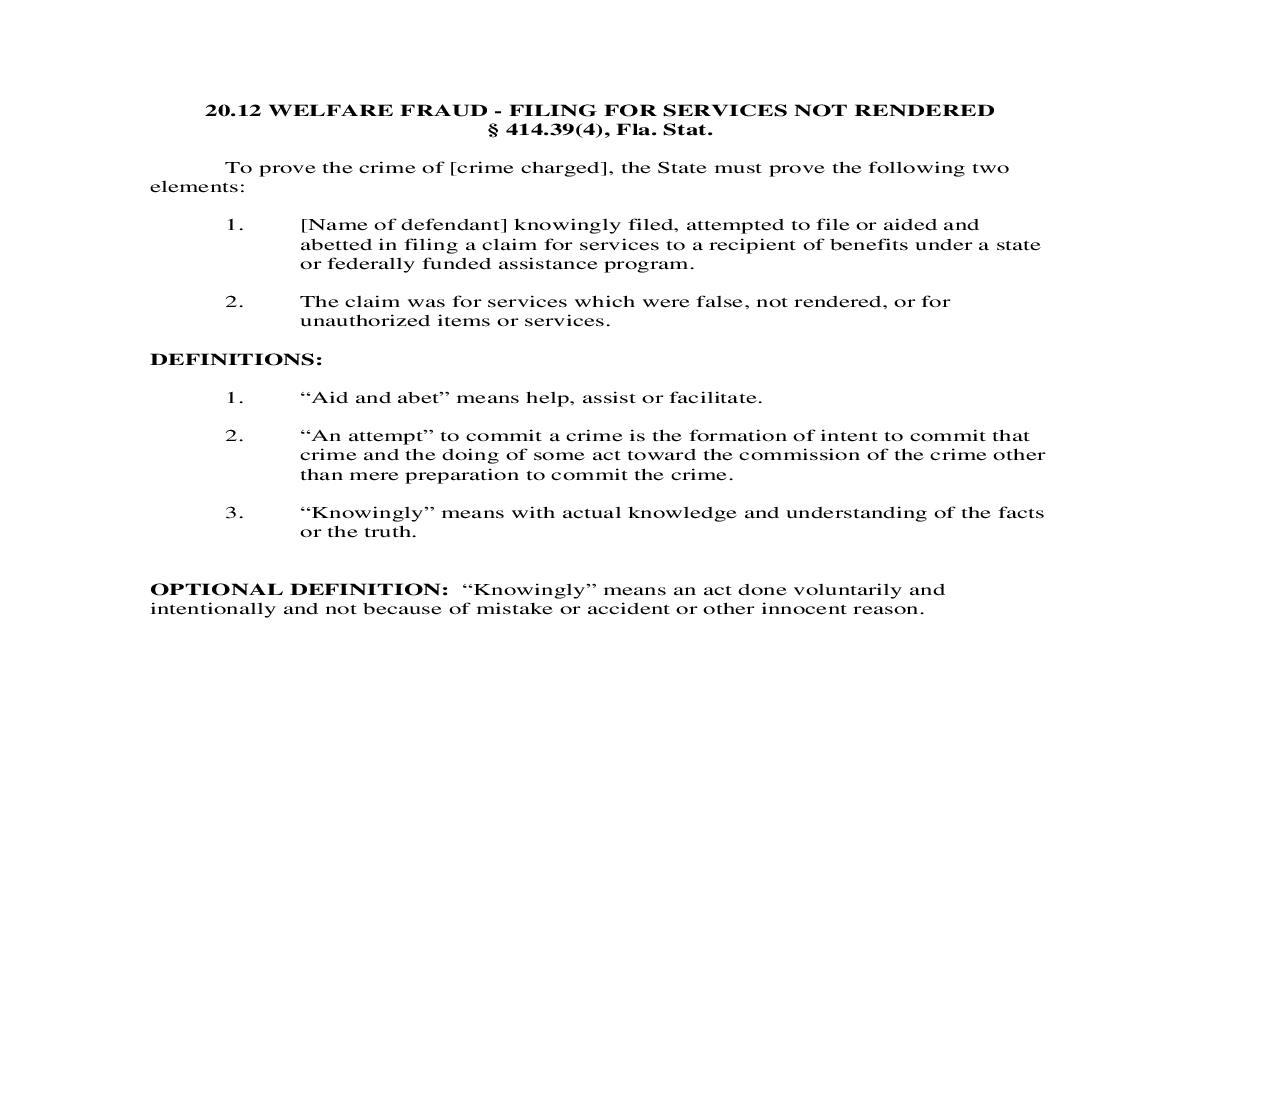 20.12. Welfare Fraud - Filing For Services Not Rendered | Pdf Doc Docx | Florida_JI